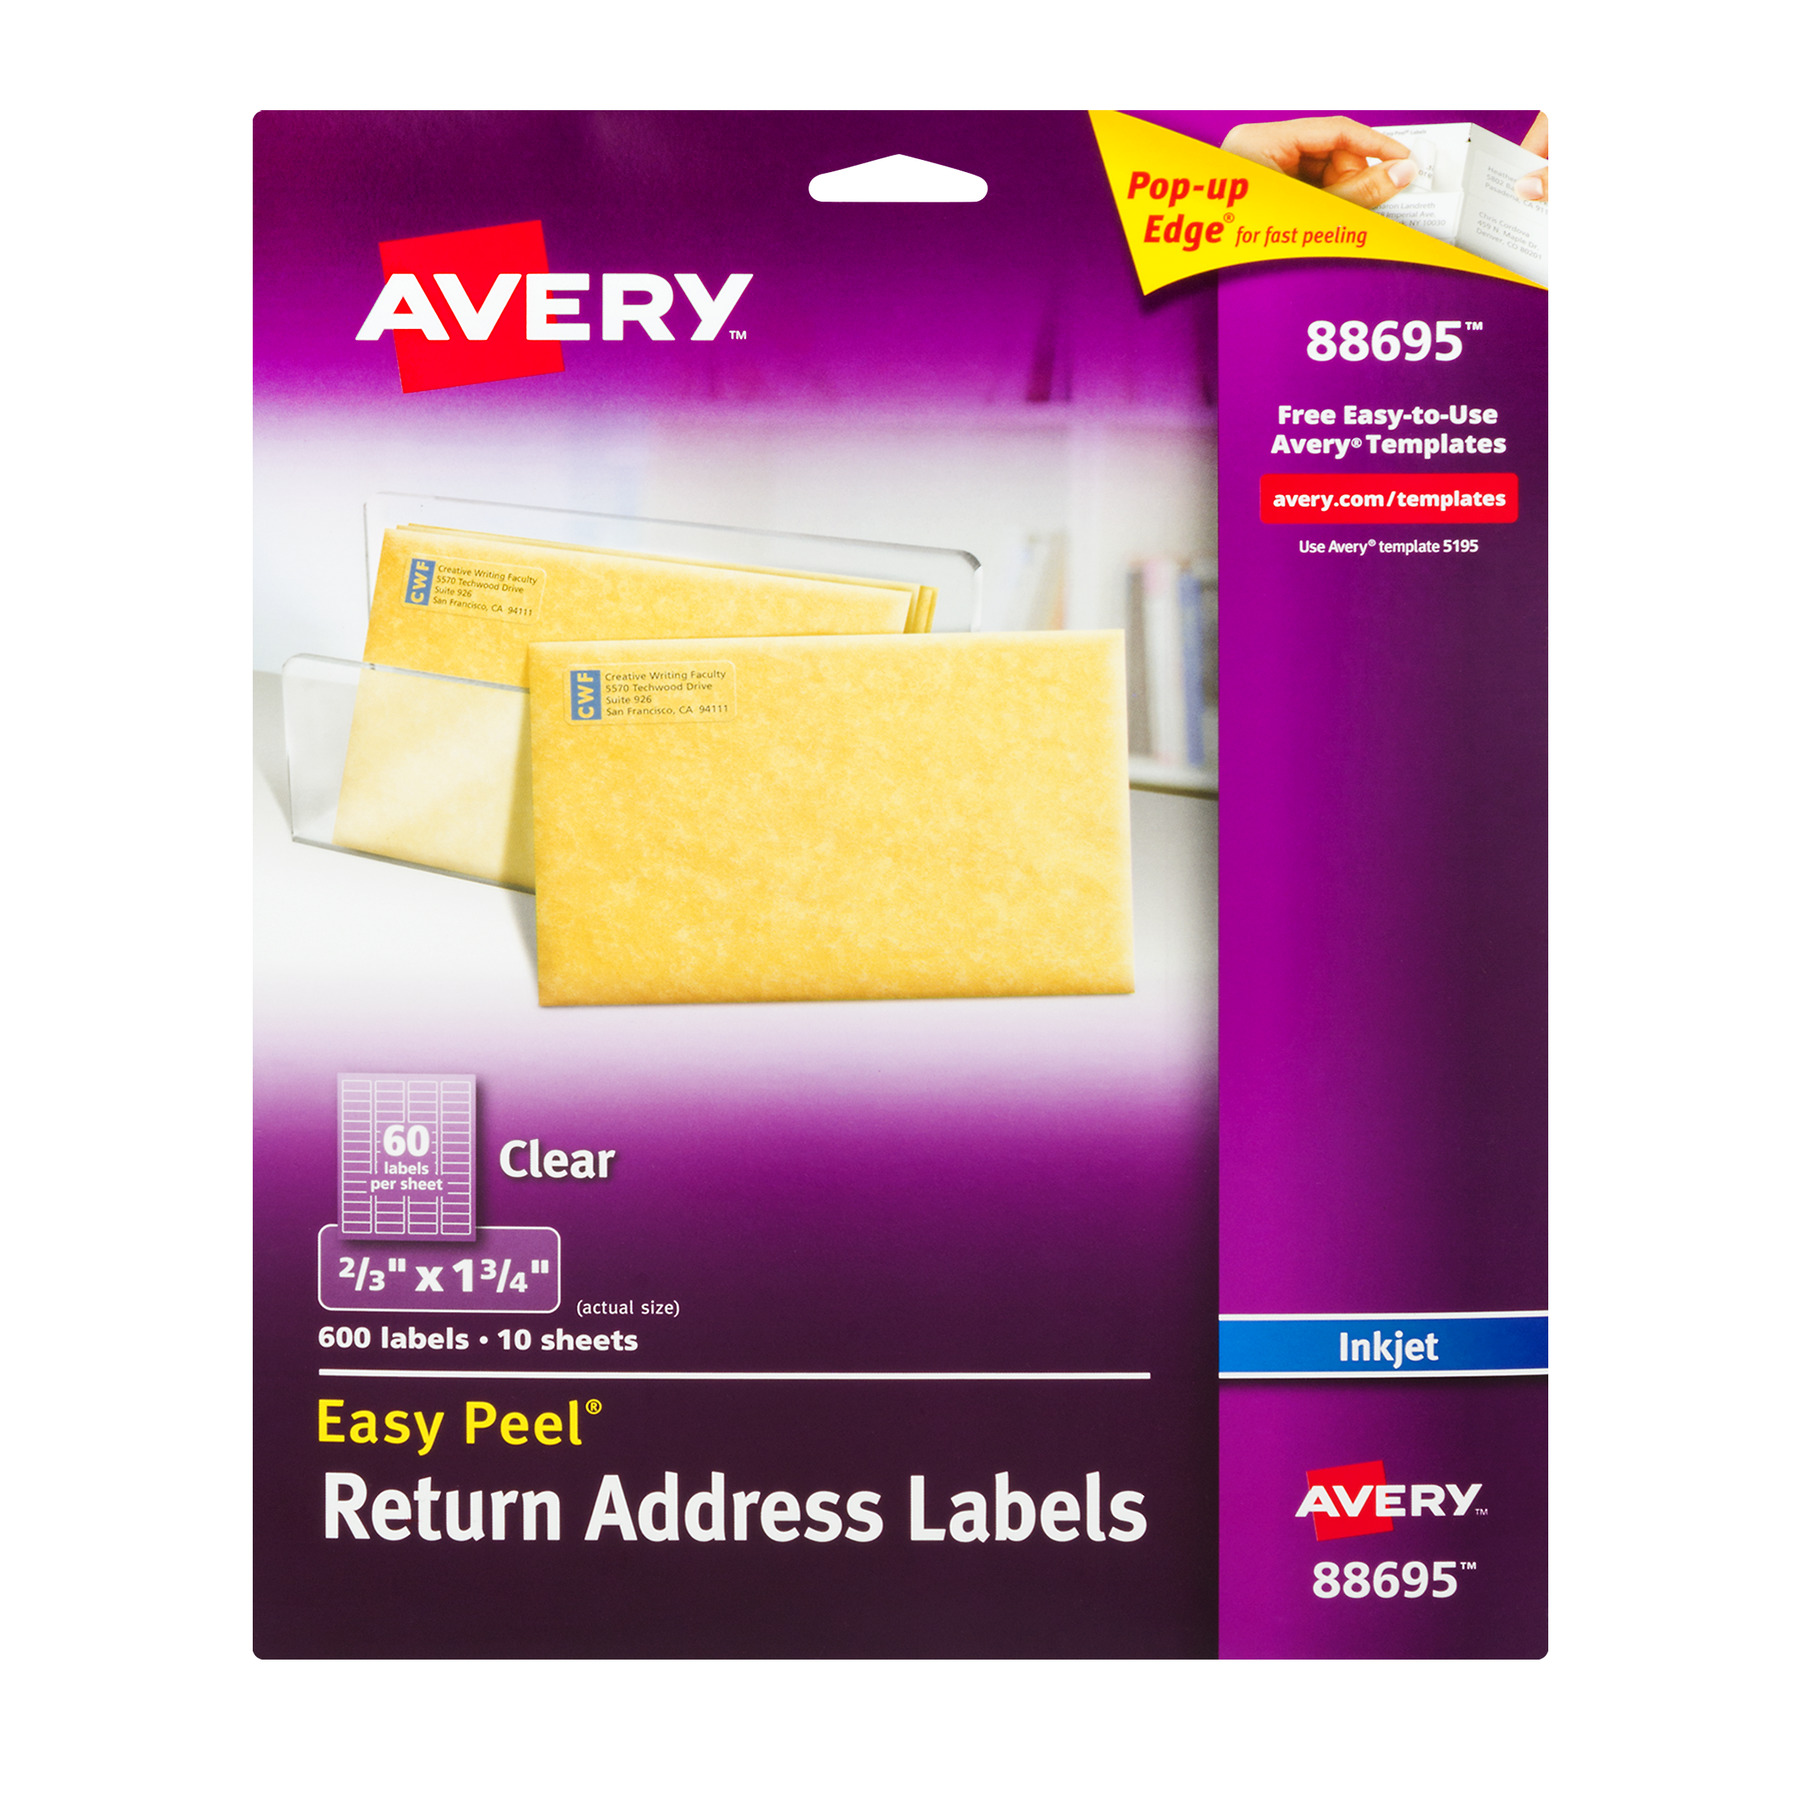 Avery Easy Peel Return Address Labels Clear, 600.0 CT